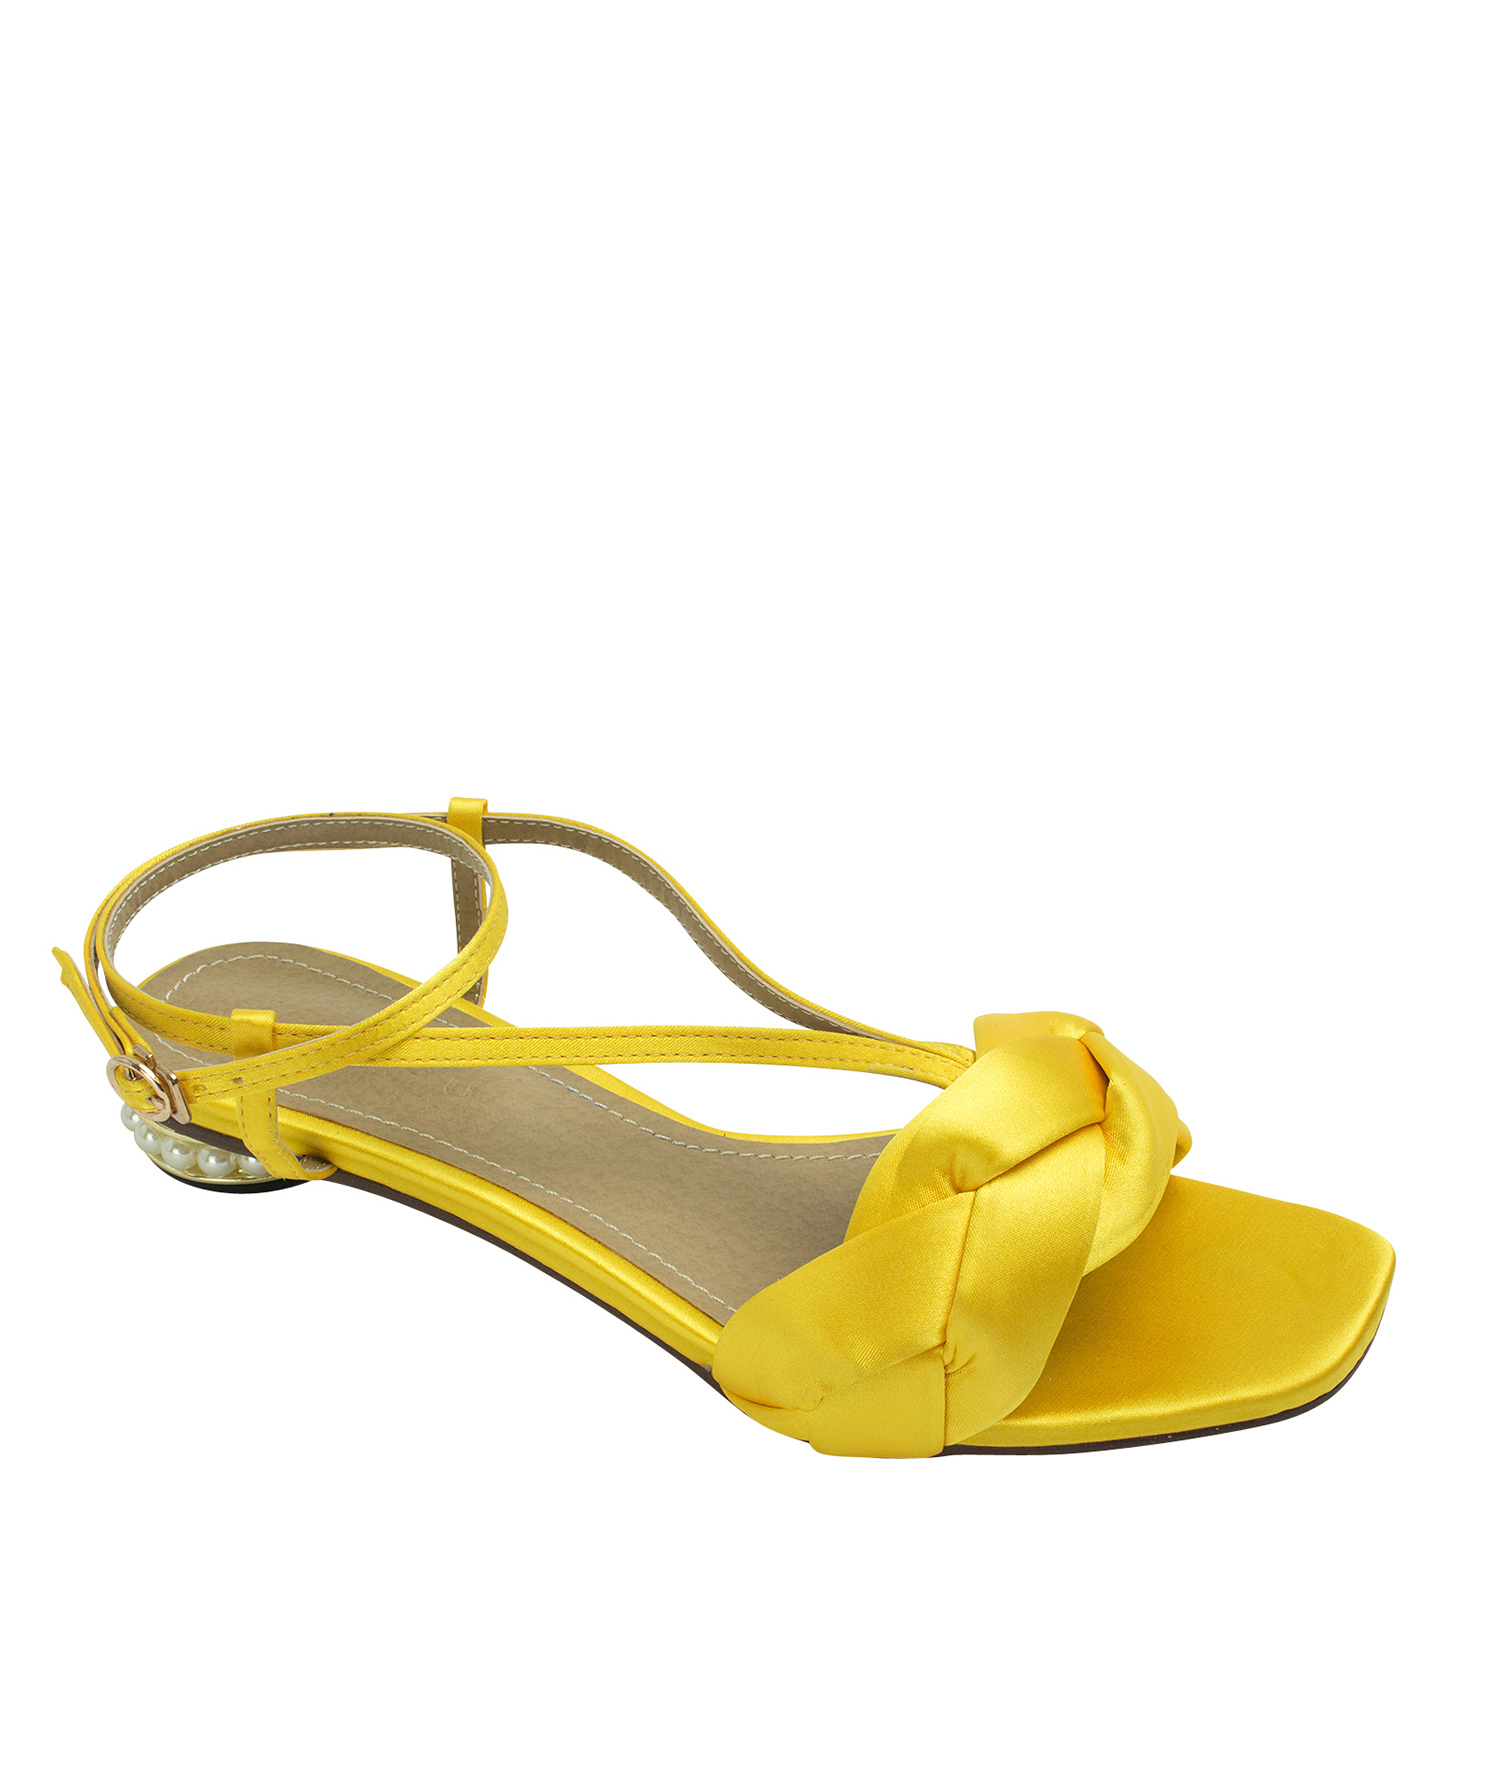 AnnaKastle Womens Faux Pearl Heel Braided Satin Sandals Yellow